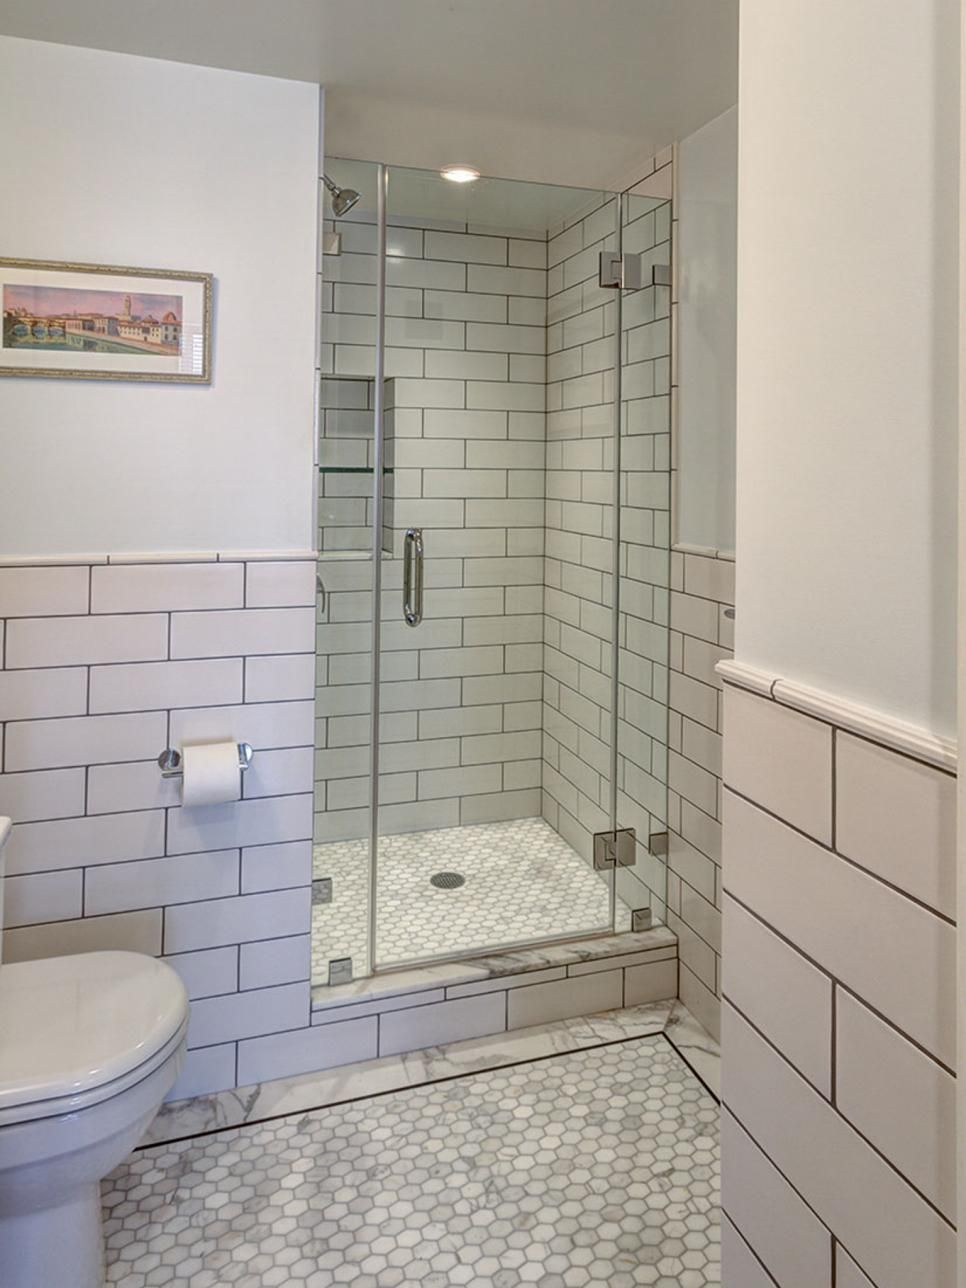 Oversized subway tile is a mod counterpart to the traditional oversized subway tile is a mod counterpart to the traditional hexagonal floor tile in this new dailygadgetfo Images